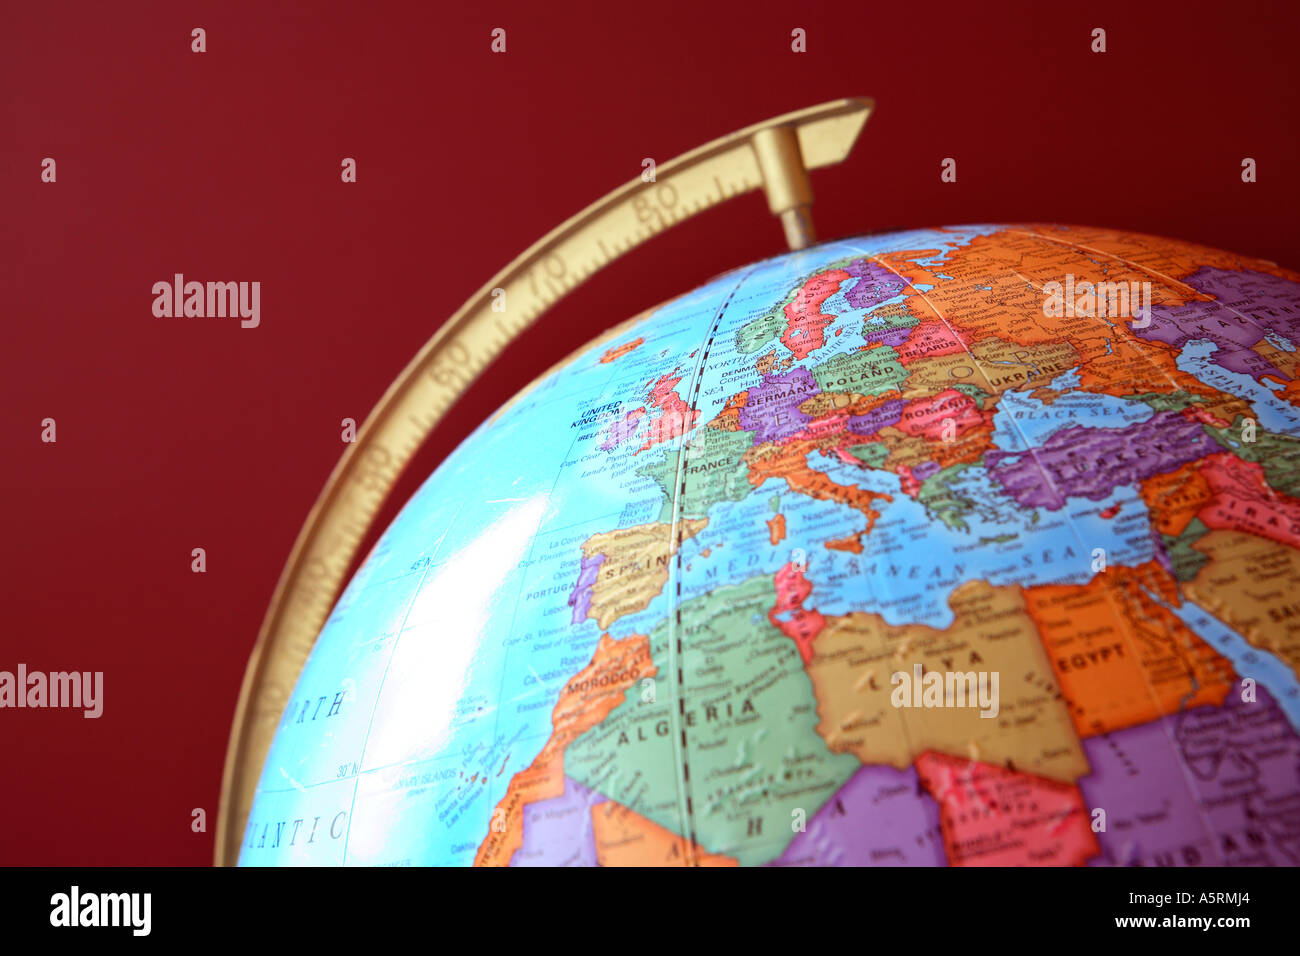 Globe with Europe an Africa visible - Stock Image